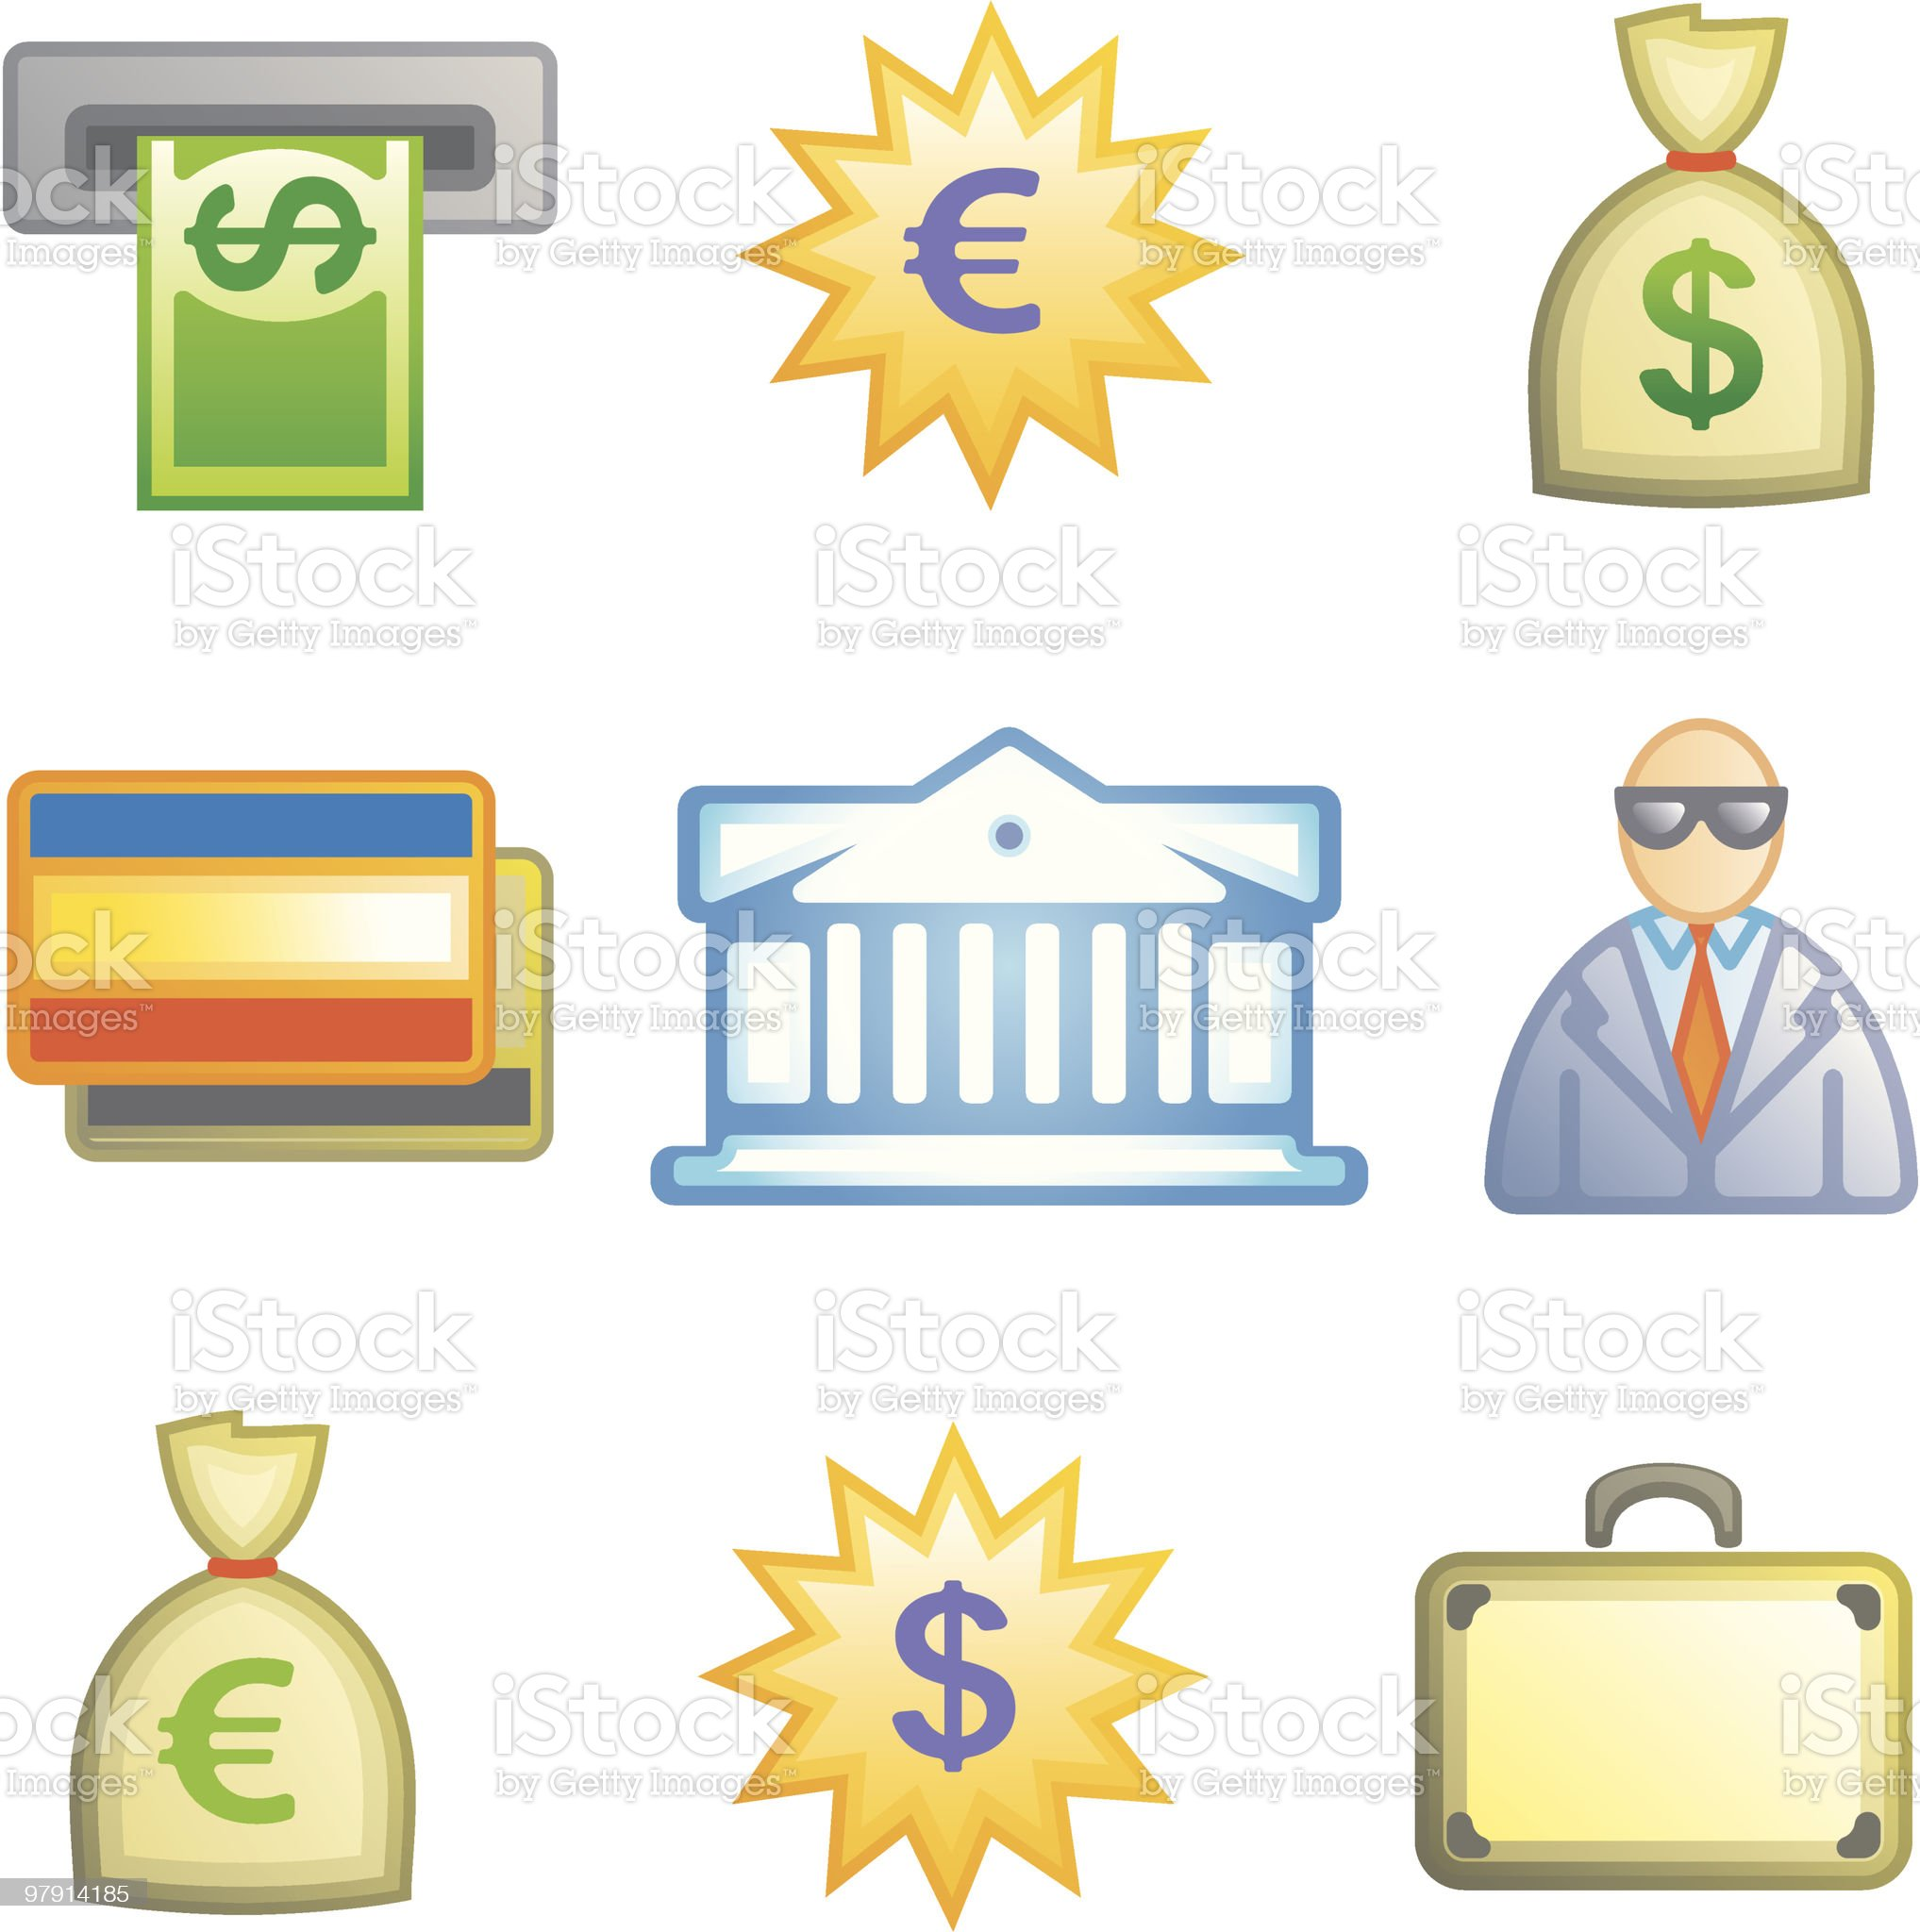 Finance and banking Icon Set royalty-free stock vector art